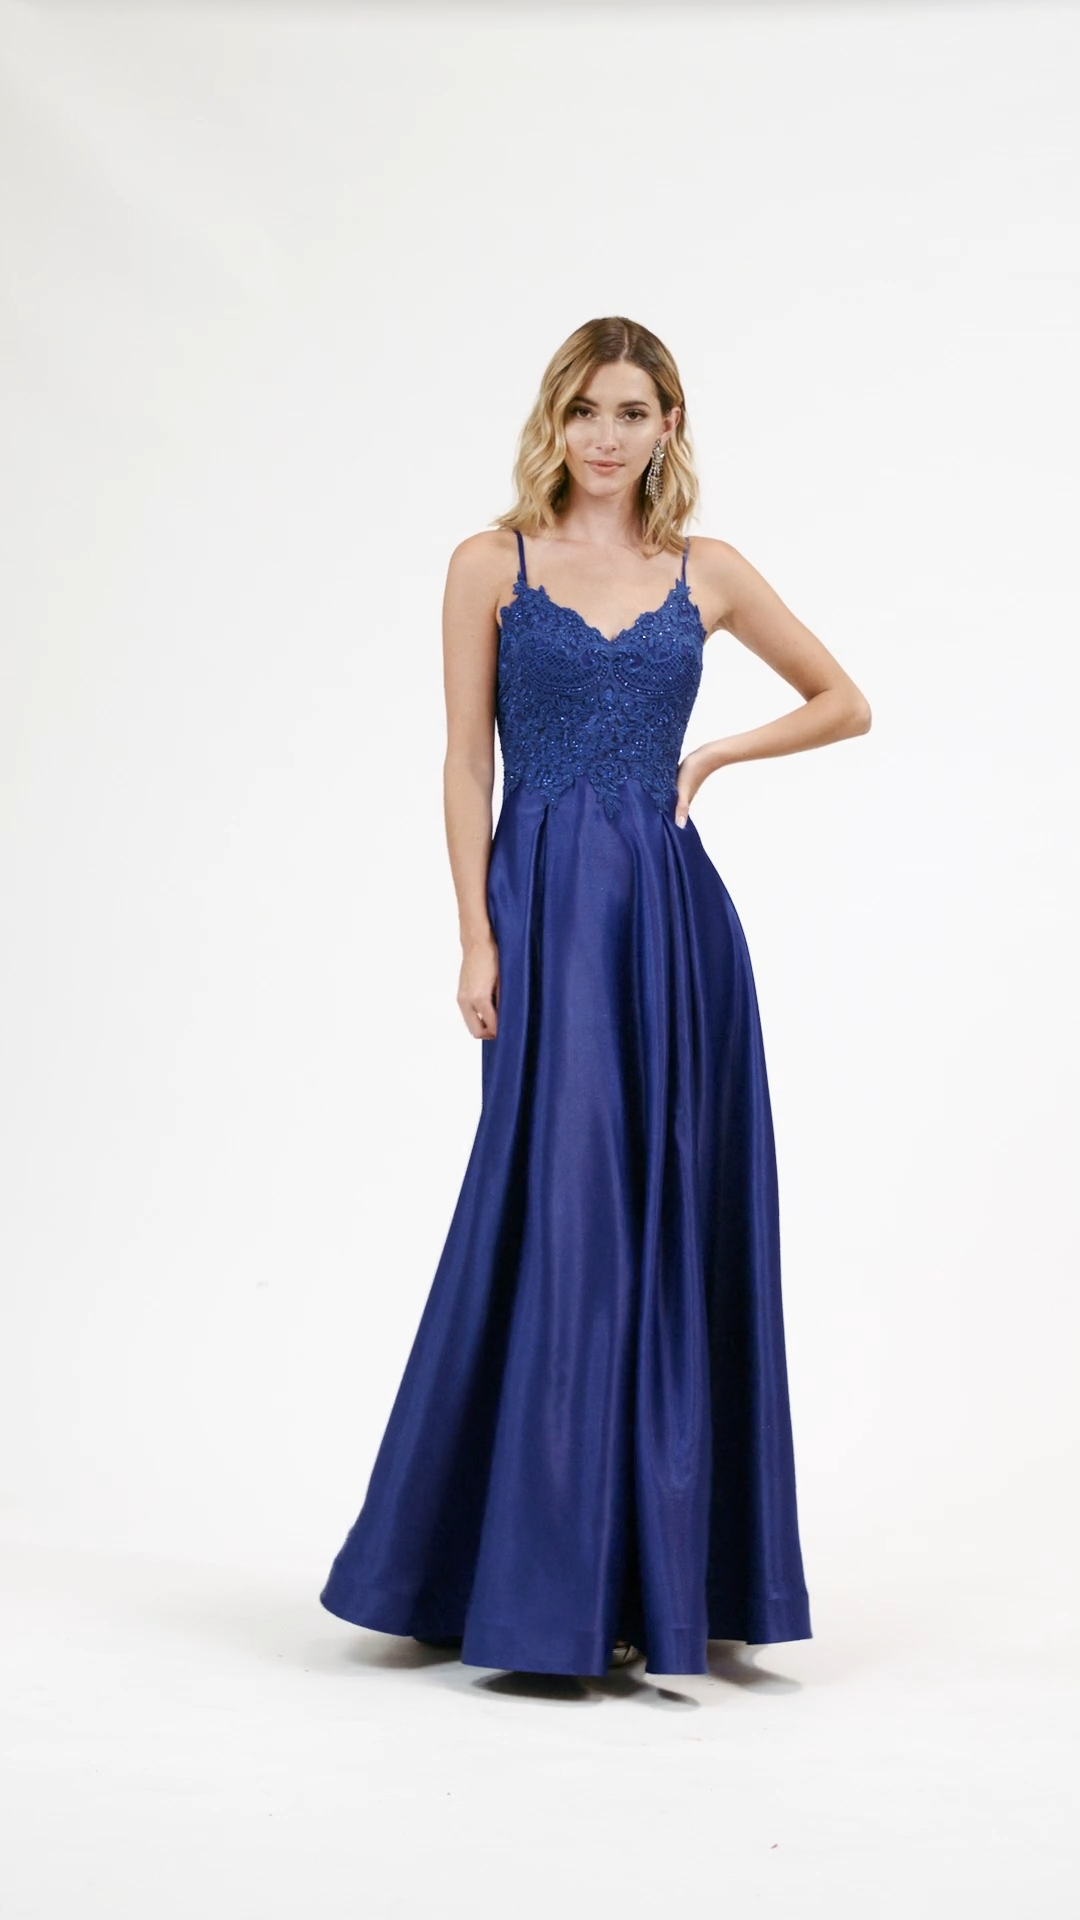 Val Stefani 3929RY fun and light weight satin and lace appliques A-line floor length formal gown